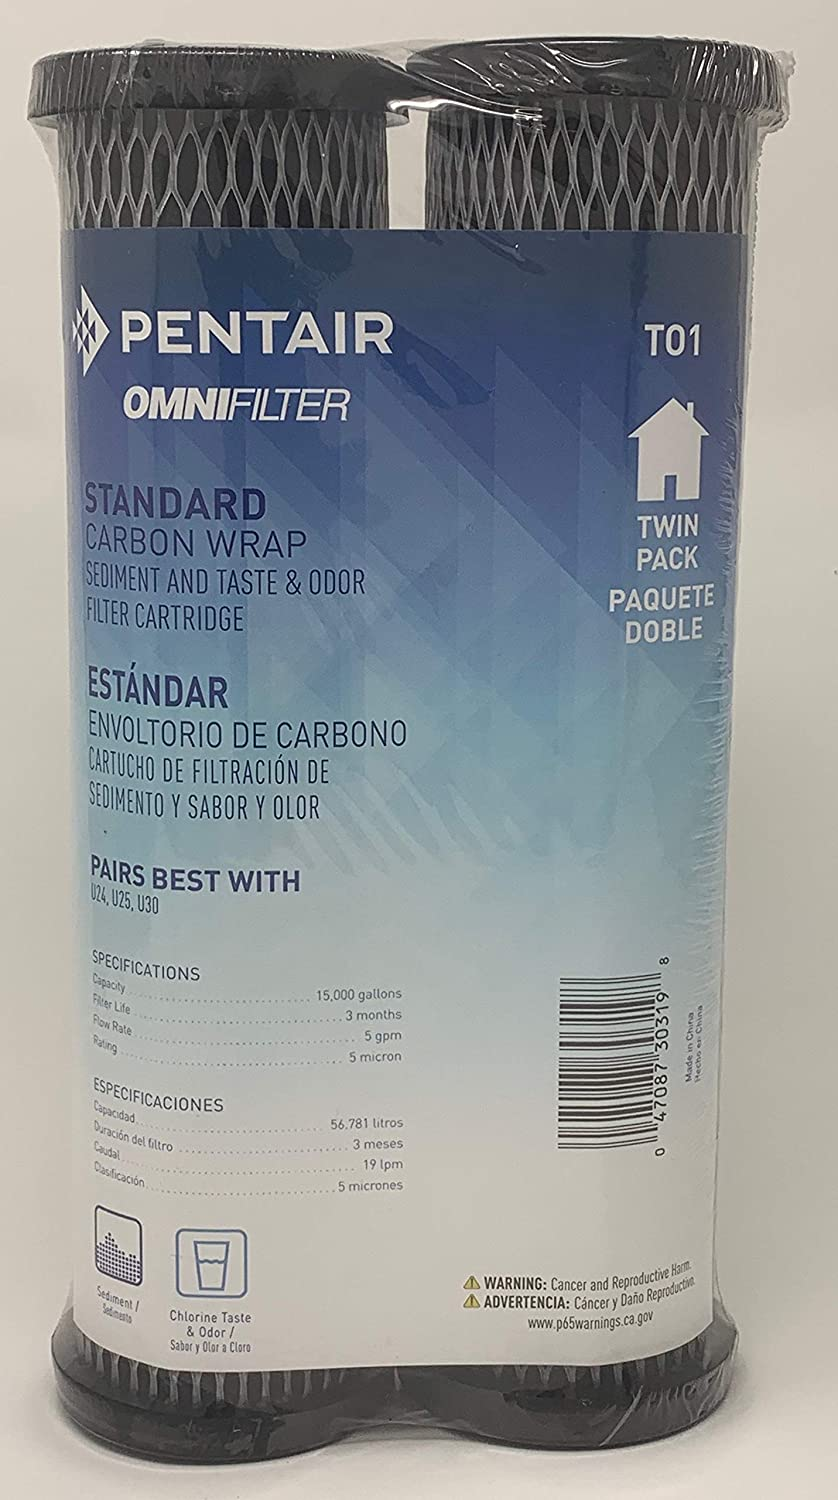 Omnifilter Standard T01 Omni TO1 Whole House Replacement Under Sink Water Filter Carbon Wrapped Cartridge (2-Pack) Chlorine Taste Odor Sediment TO1 T01 (Twin Pack) Water Filter Newest Model